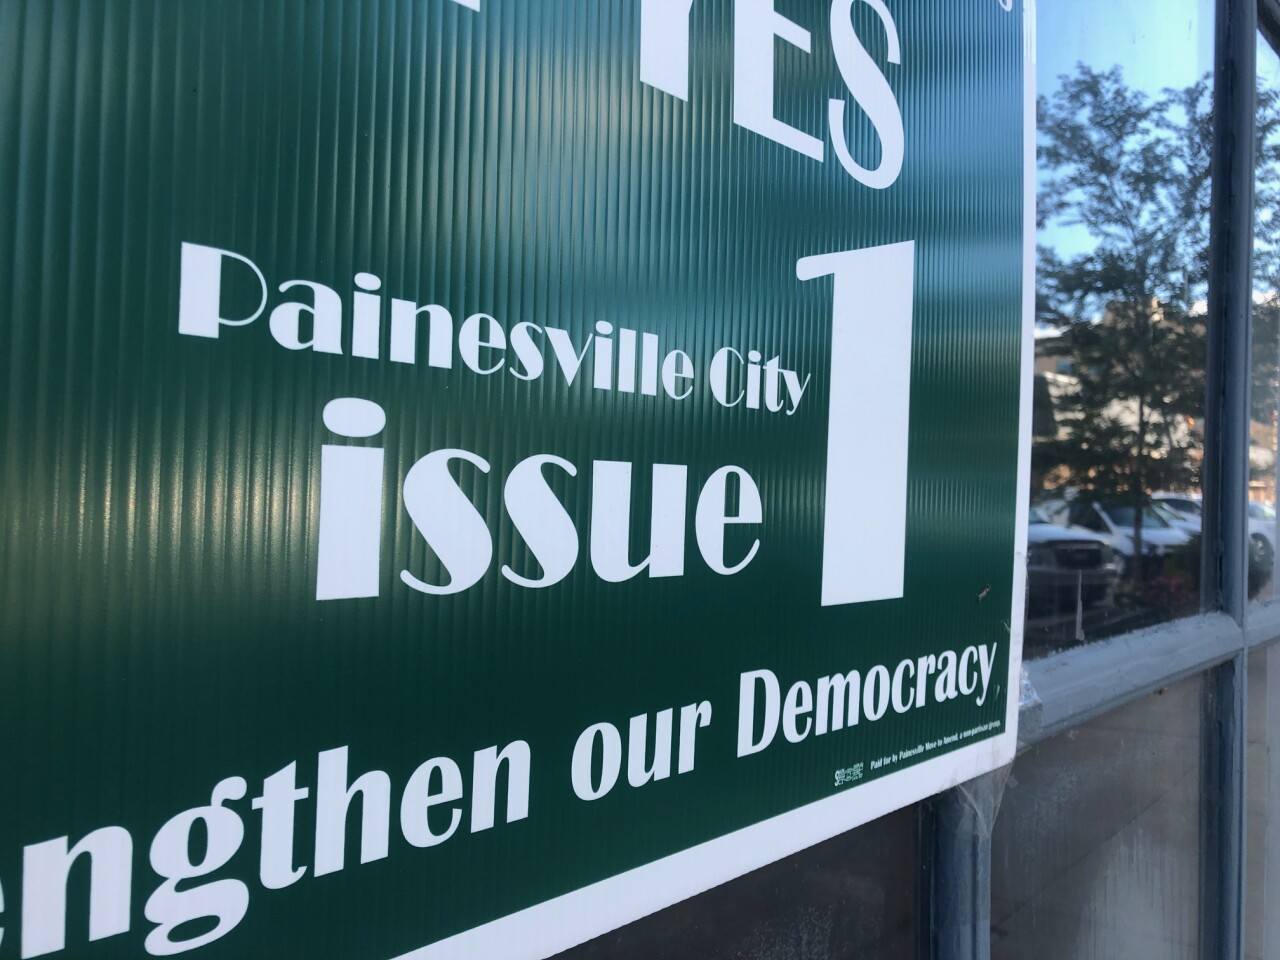 painesville issue 1 3